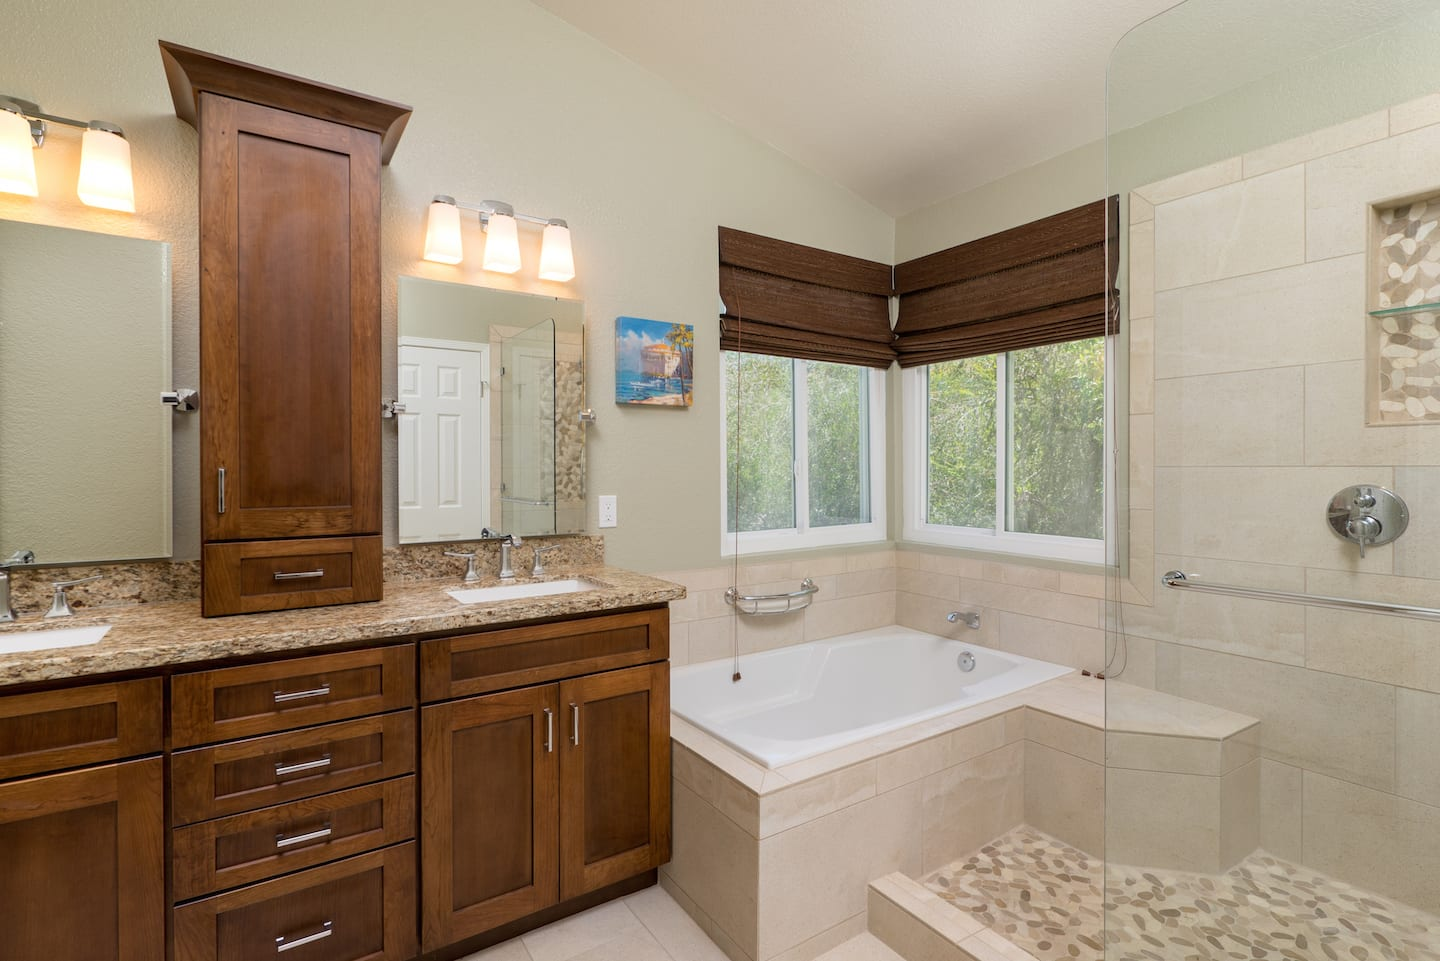 Bathroom Remodel Cost India bathroom remodeling - planning and hiring | angie's list